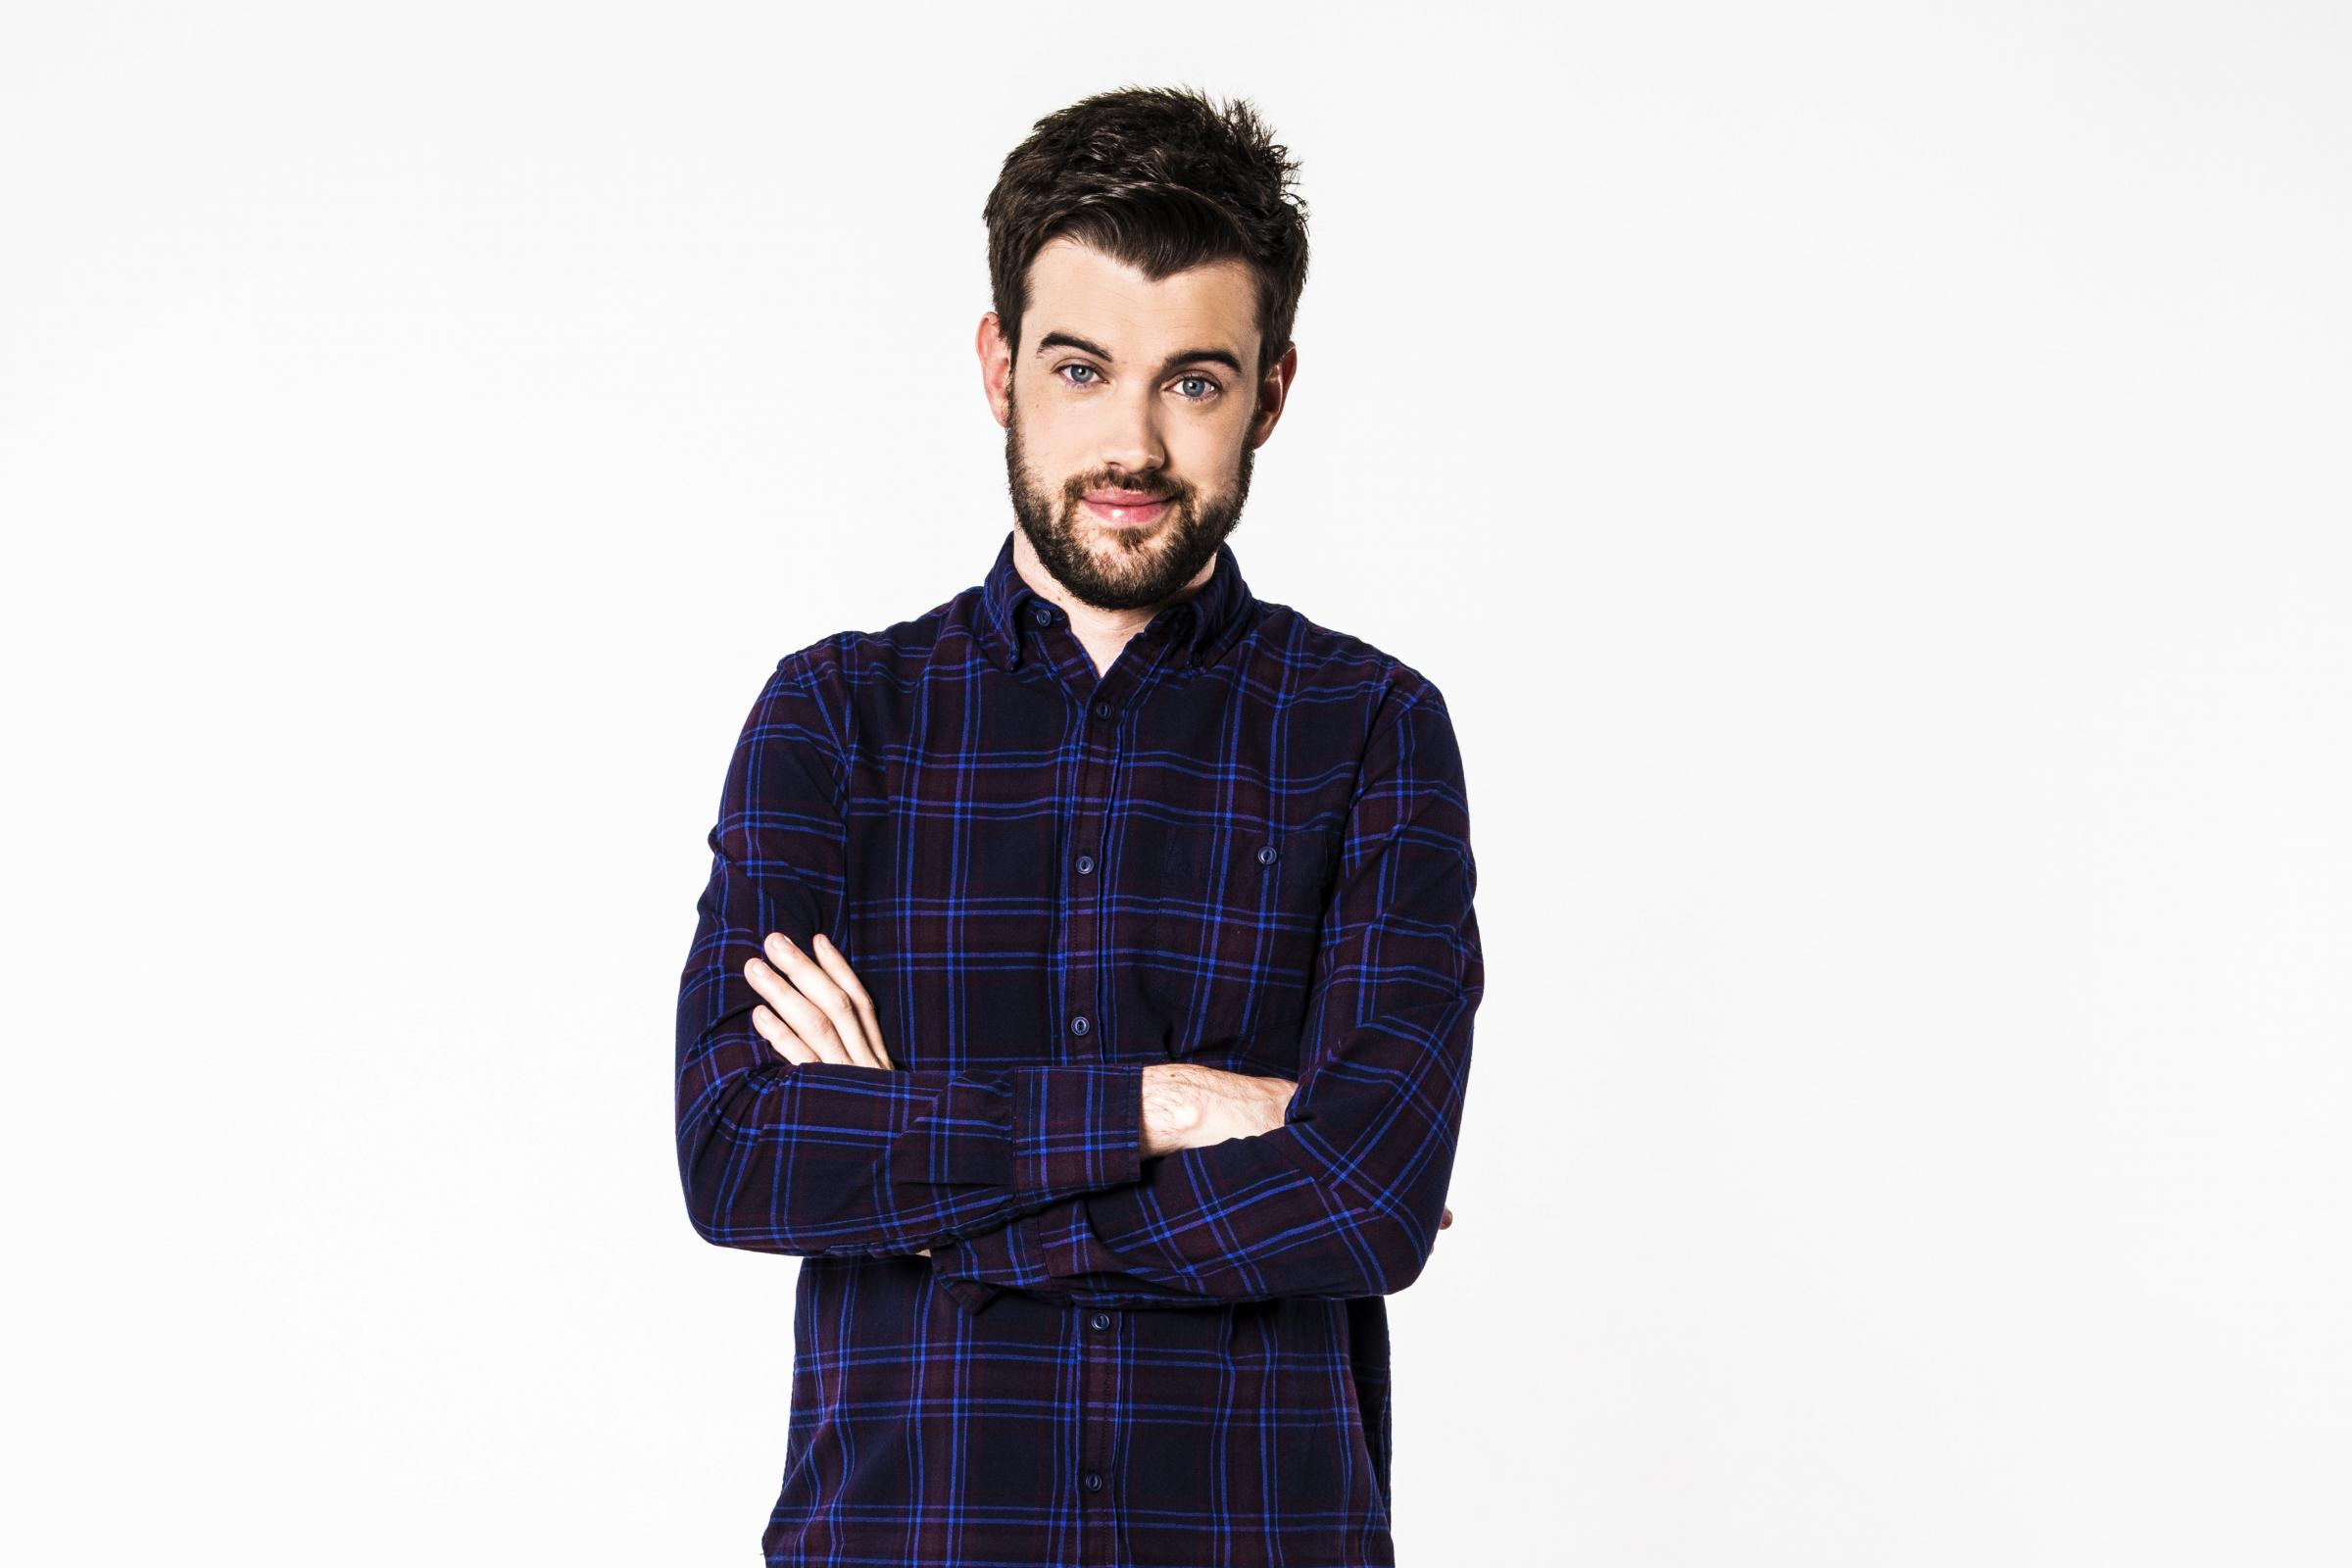 Time for some Fresh Meat: Jack Whitehall to make Brit Awards hosting debut (Handout)